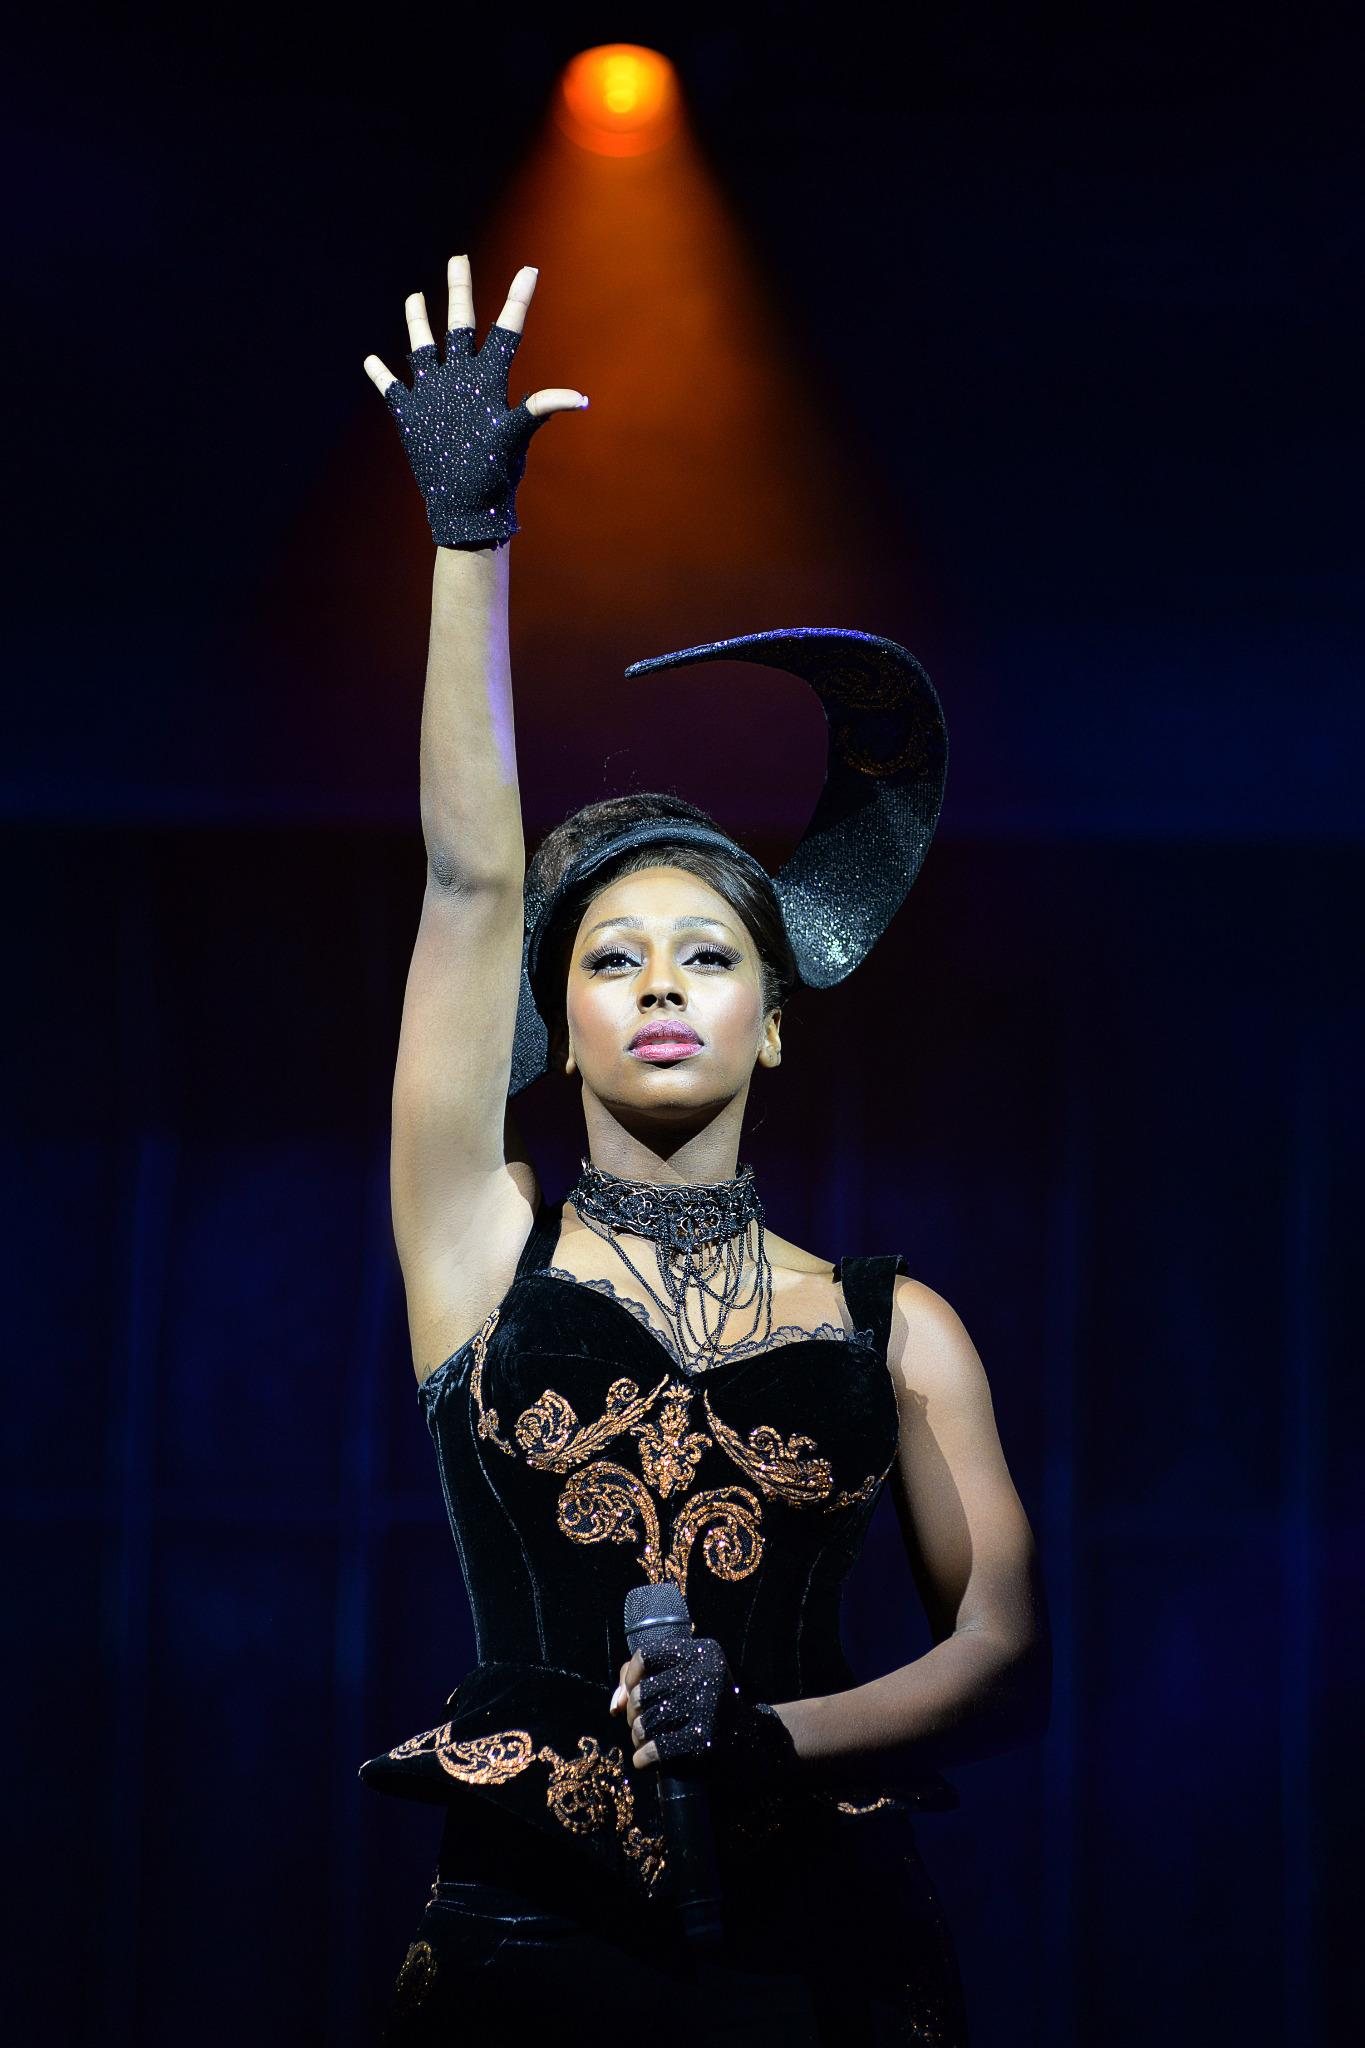 RT @TheBodyguardUK: Our Rachel Marron @alexandramusic during 'Queen Of The Night'. http://t.co/WcpyFYXeTL http://t.co/usBdNRIq6b